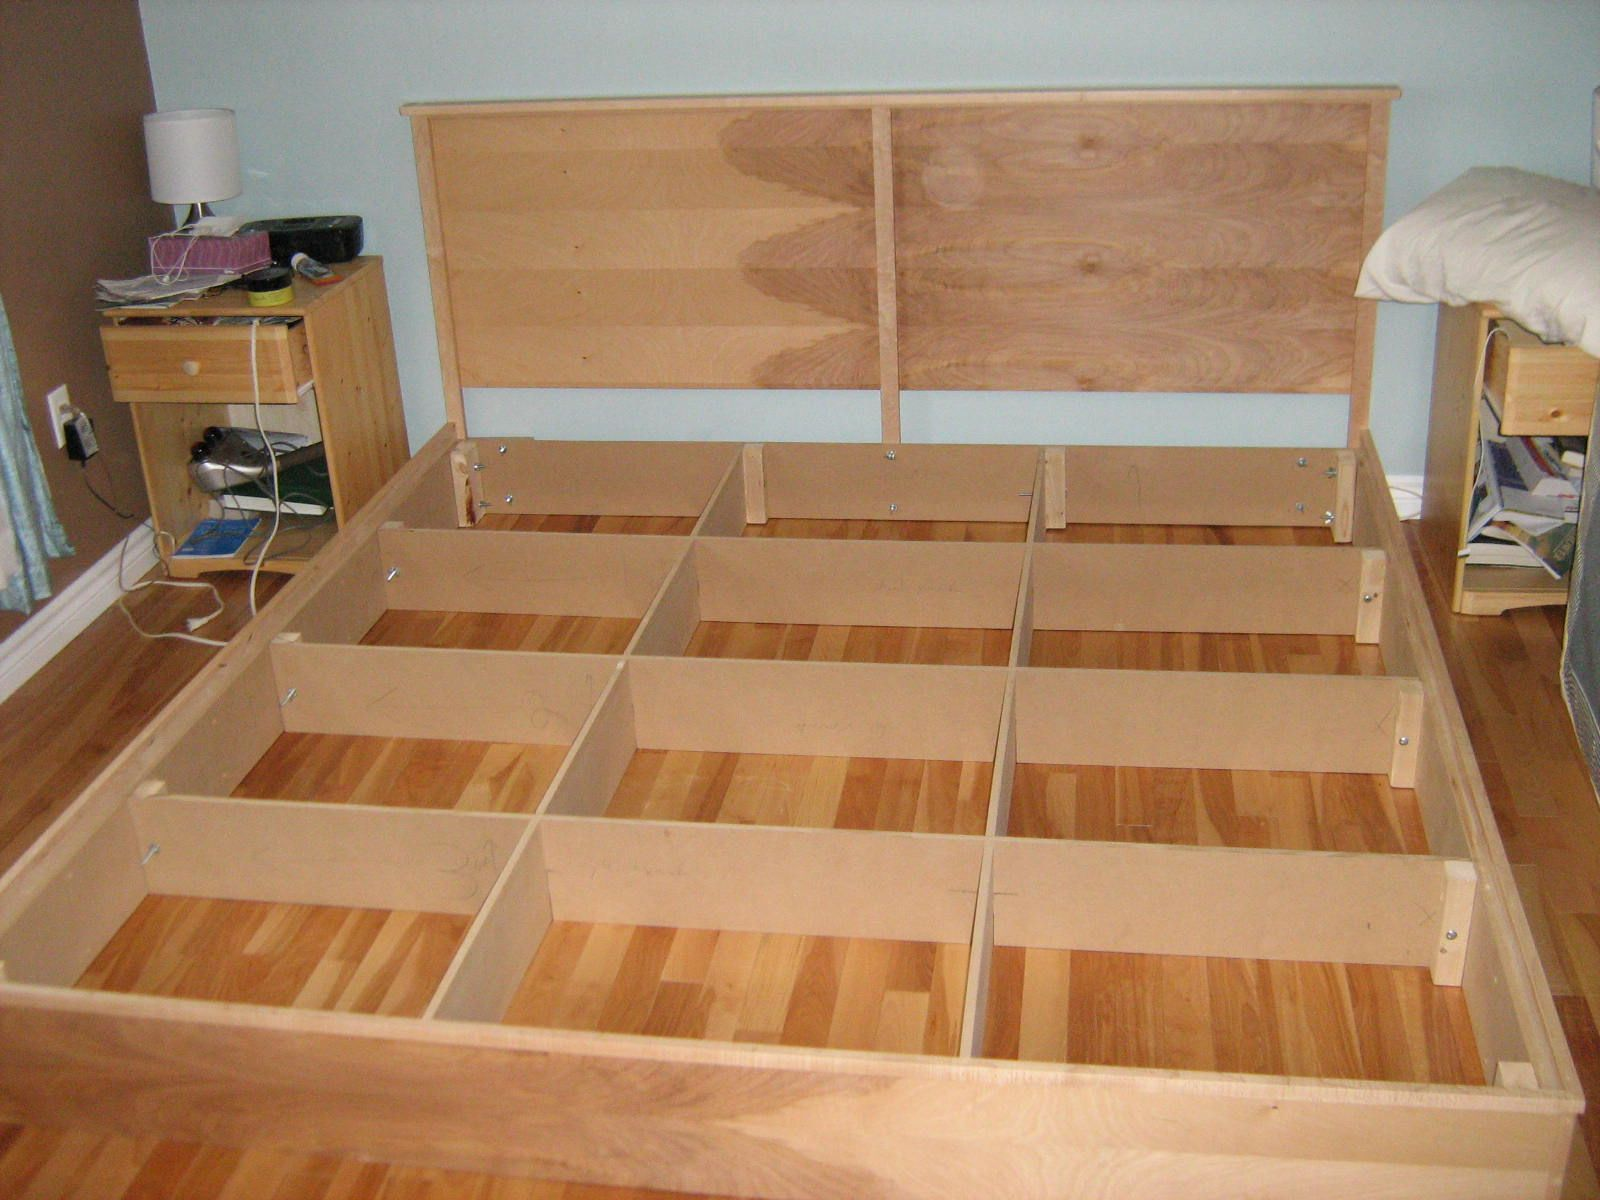 Permalink to diy king size platform bed frame plans